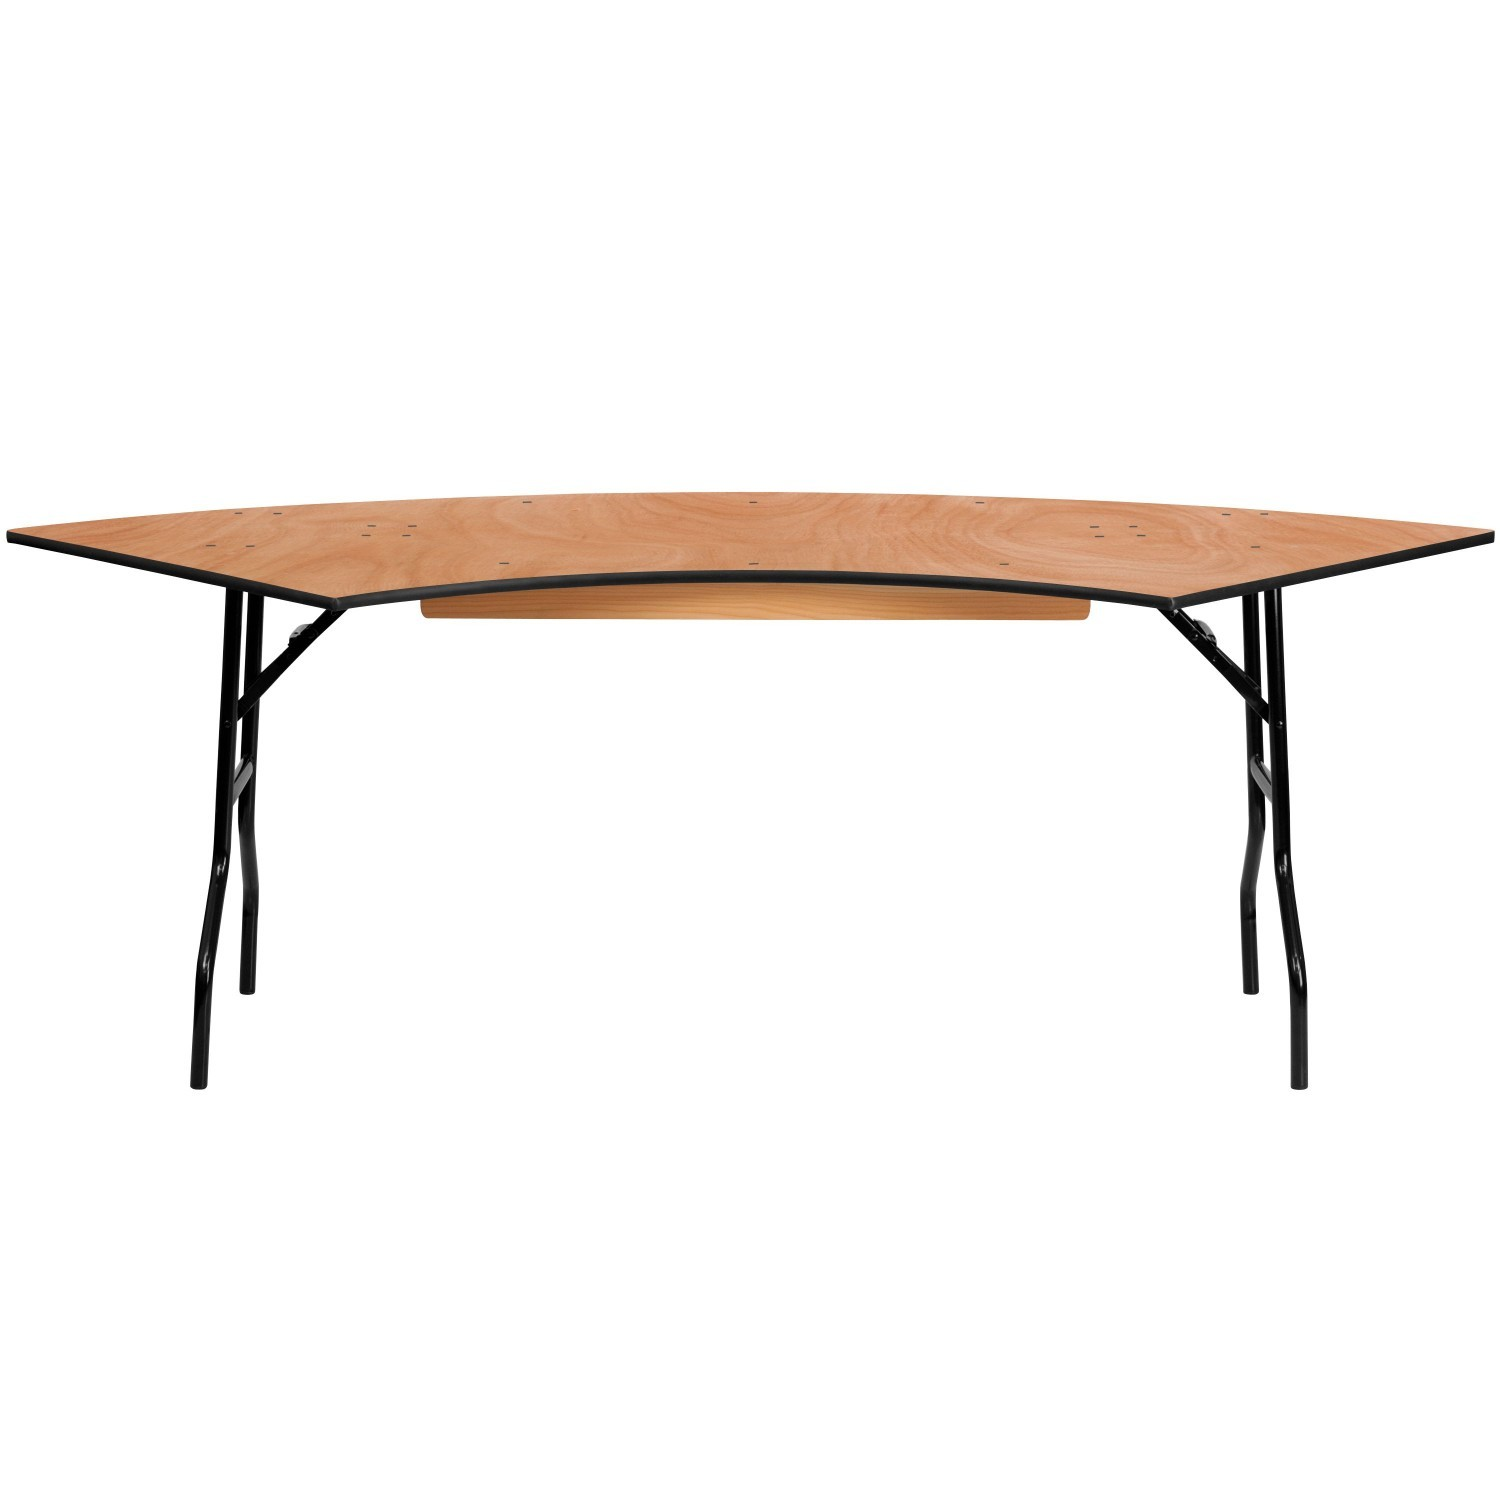 Flash Furniture YT-WSFT60-30-SP-GG 7.25 ft. x 2.5 ft. Serpentine Wood Folding Banquet Table